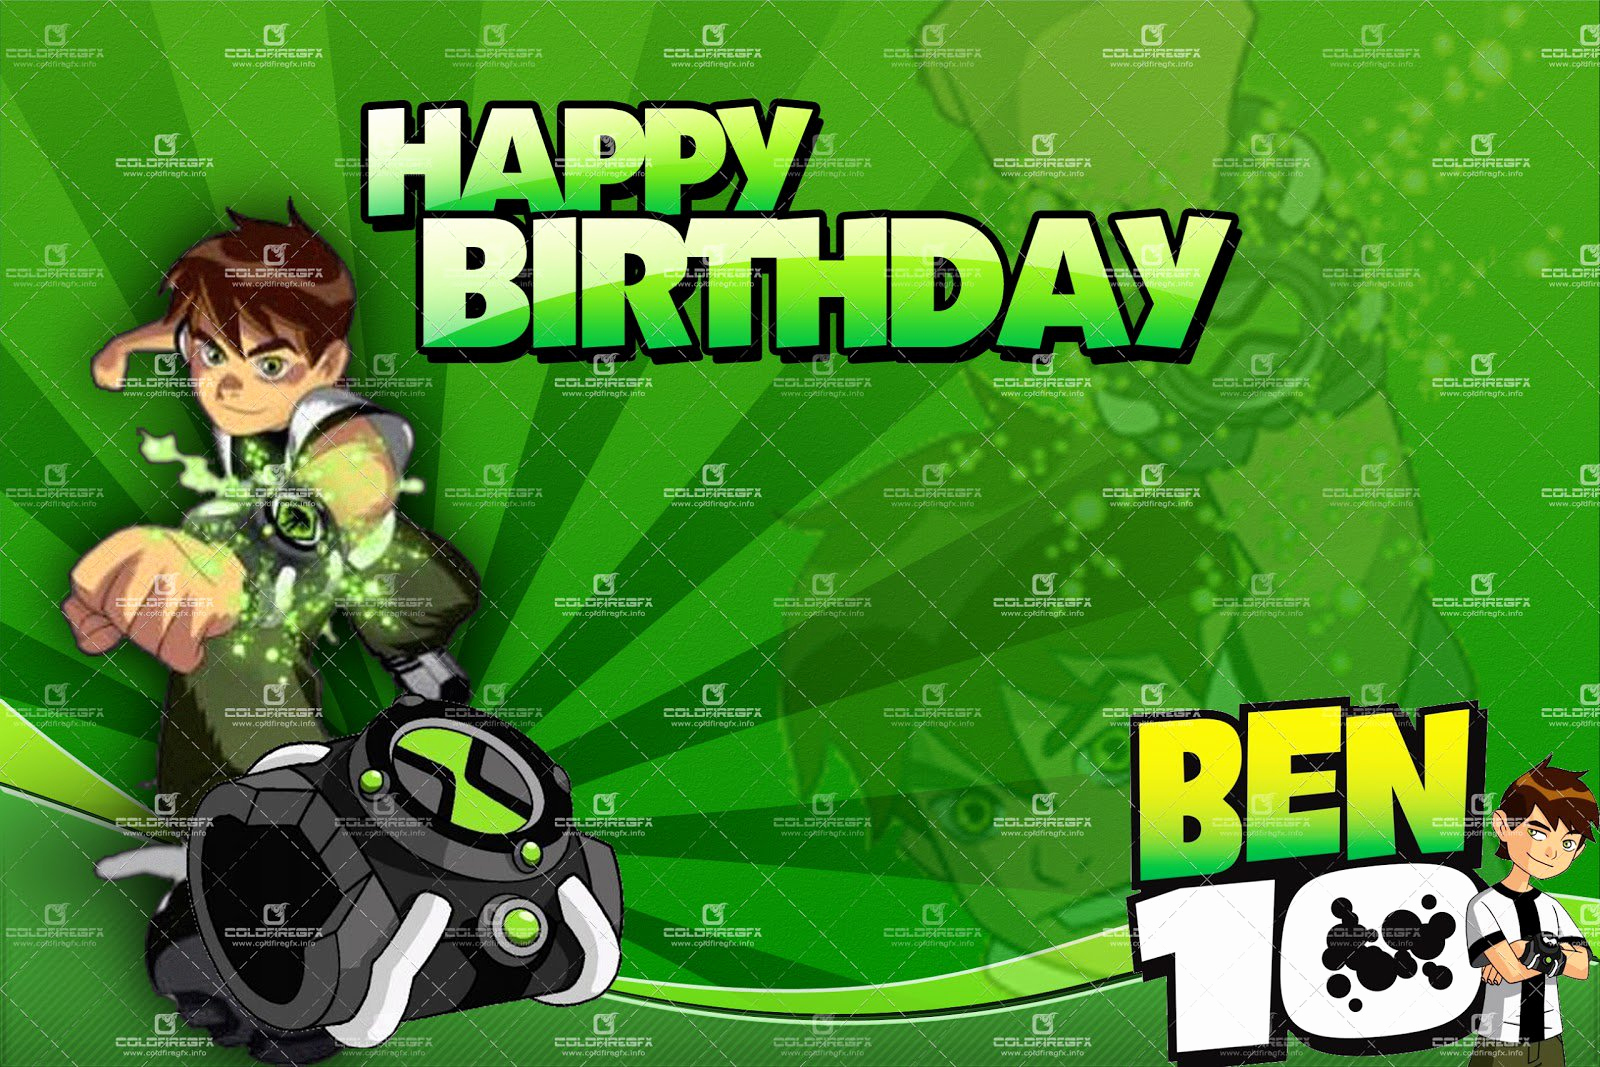 Ben 10 Birthday Invitation Elegant Ben 10 Birthday Invitations